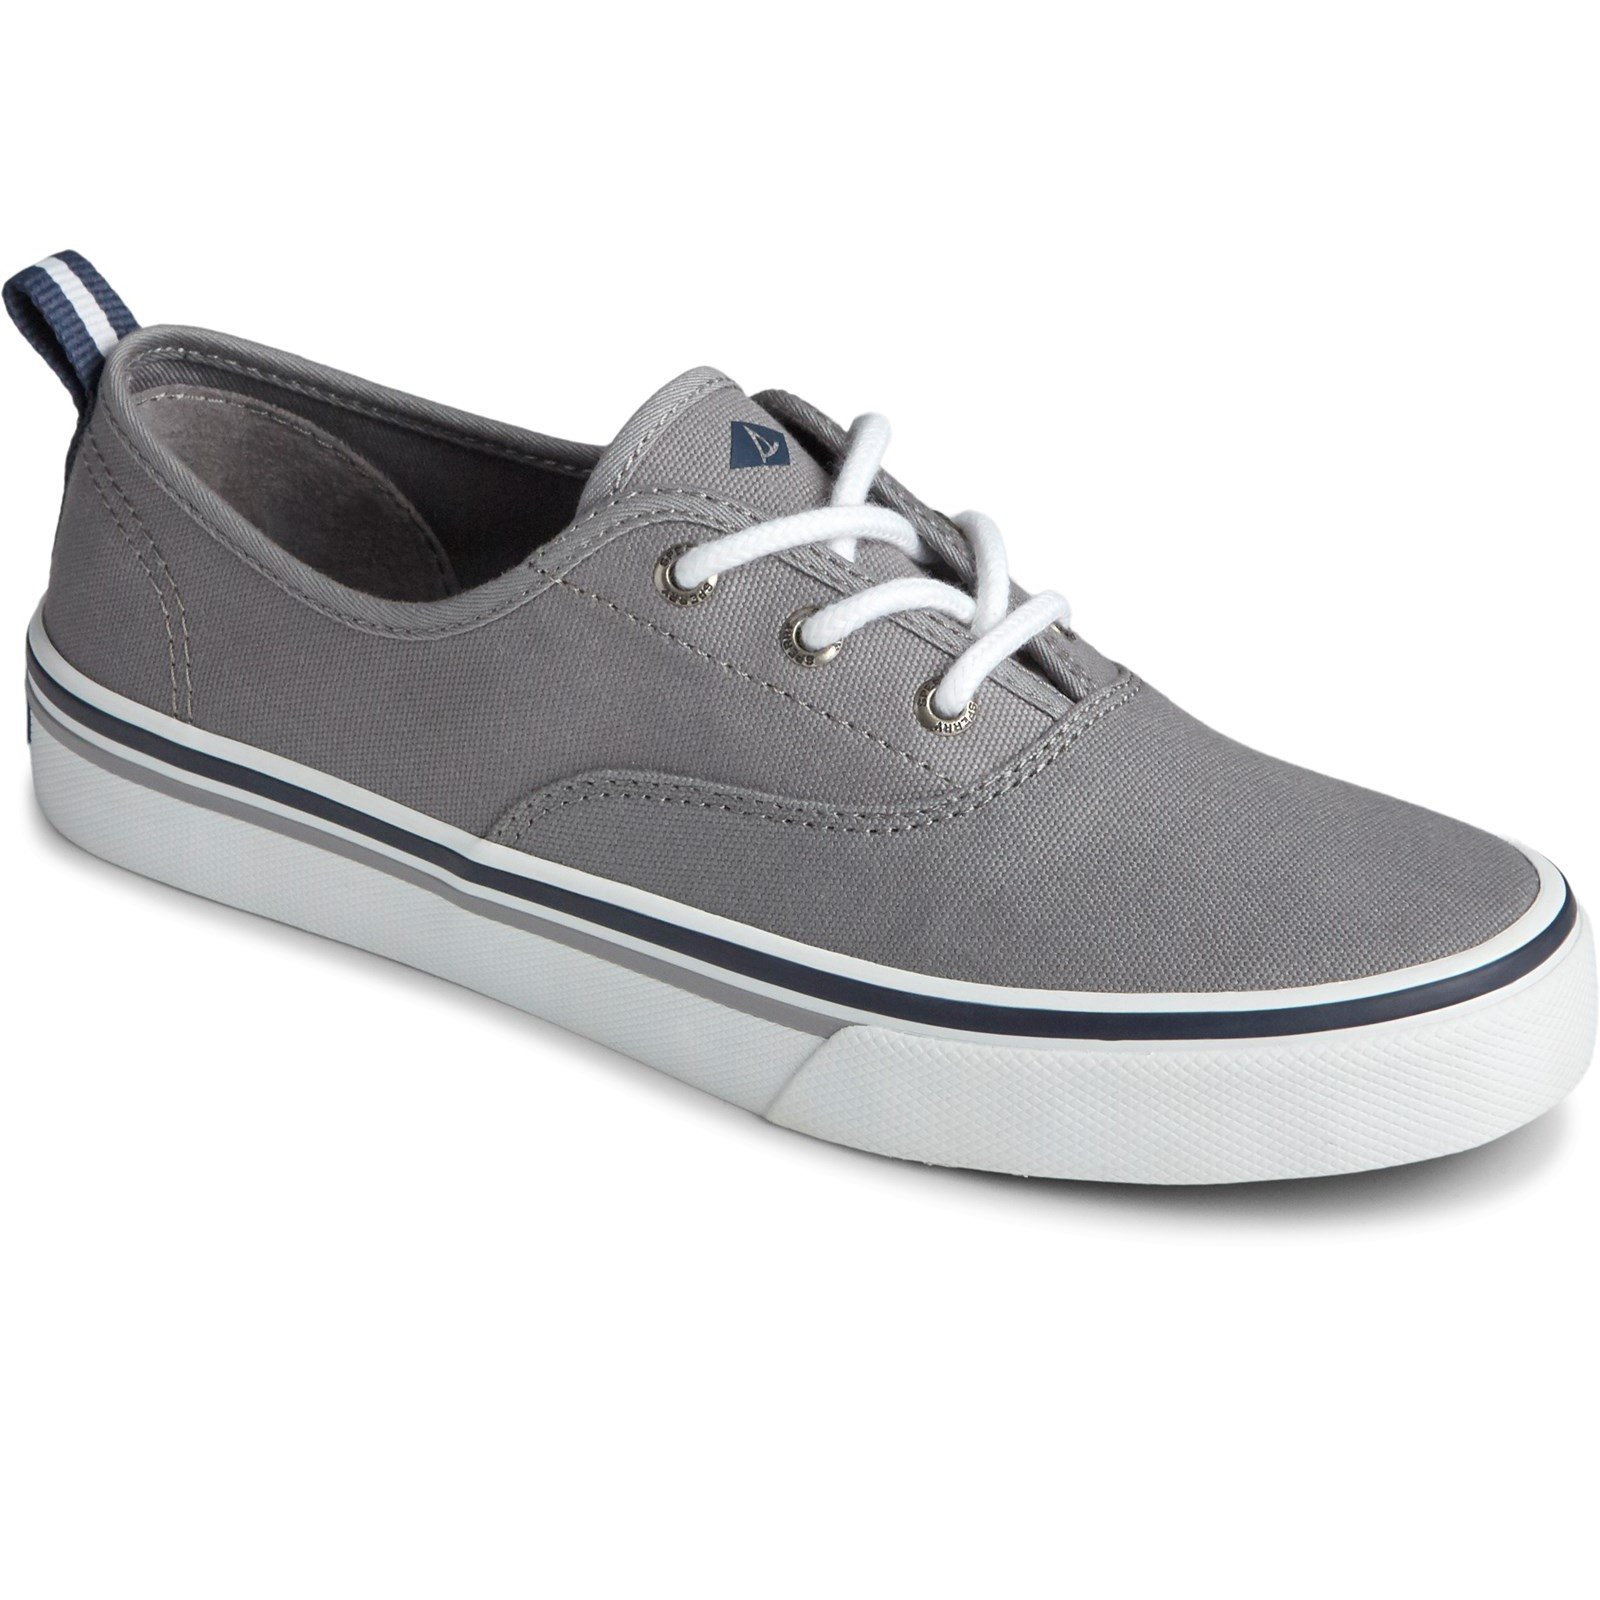 Sperry Women's Crest CVO Trainers Various Colours 32936 - Grey 6